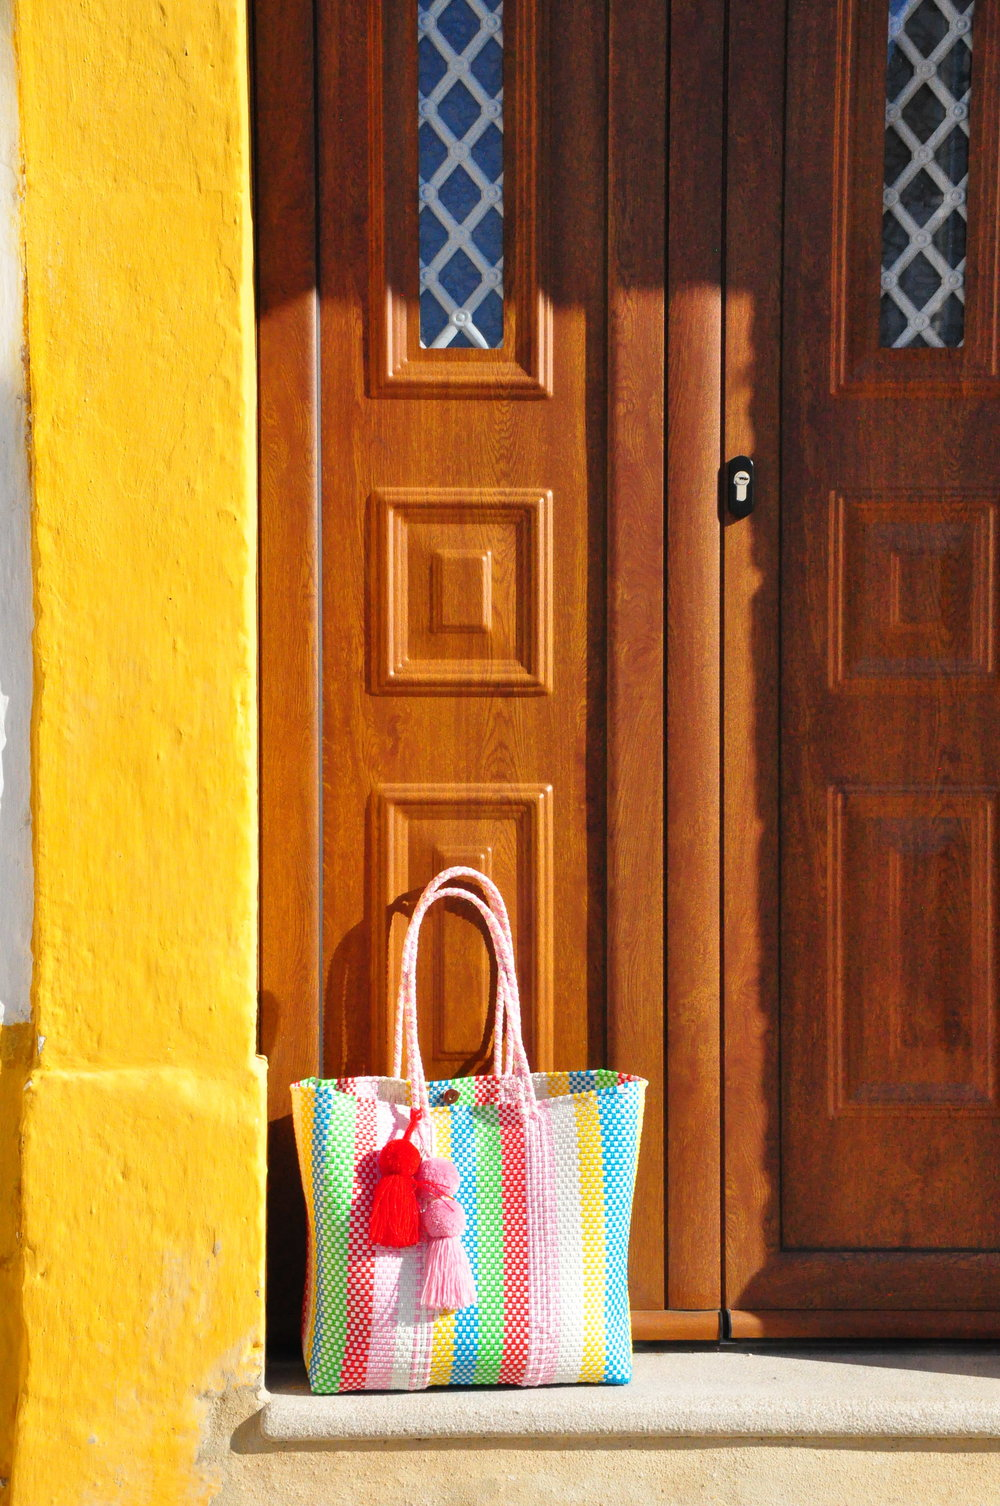 Yellow walls and recycled plastic Beatriz tote bag | A  day in Tavira  | Algarve, Portugal | Soi 55 Travels